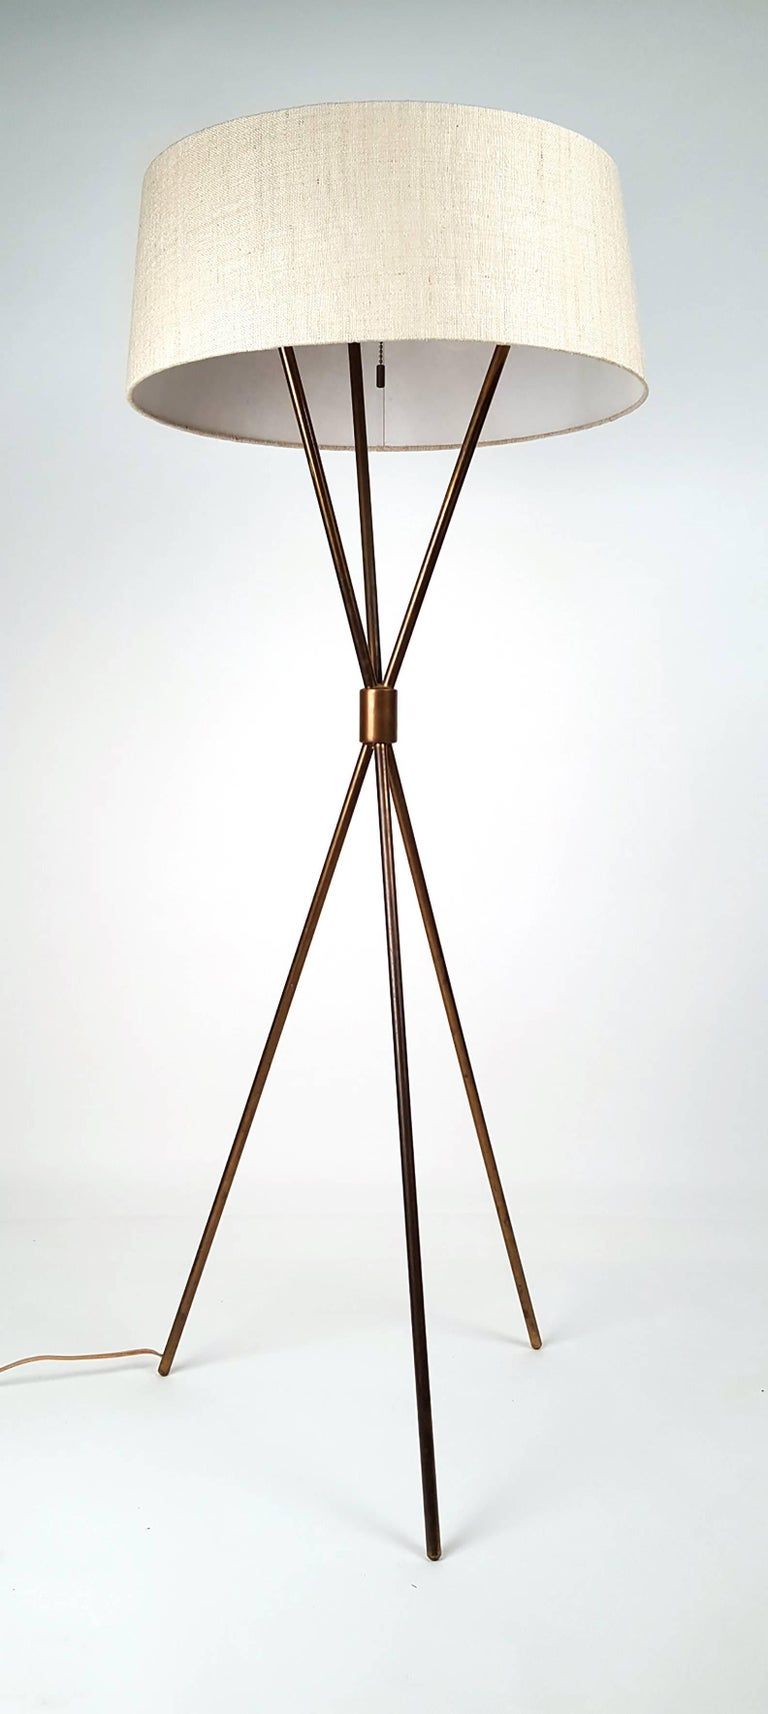 Early 1950s brass tripod floor lamp by T.H. Robsjohn-Gibbings for Hansen. Distributed by Widdicomb Furniture Company. Model #201-M. Exceptional patina. Beautiful shade. Functions as intended.